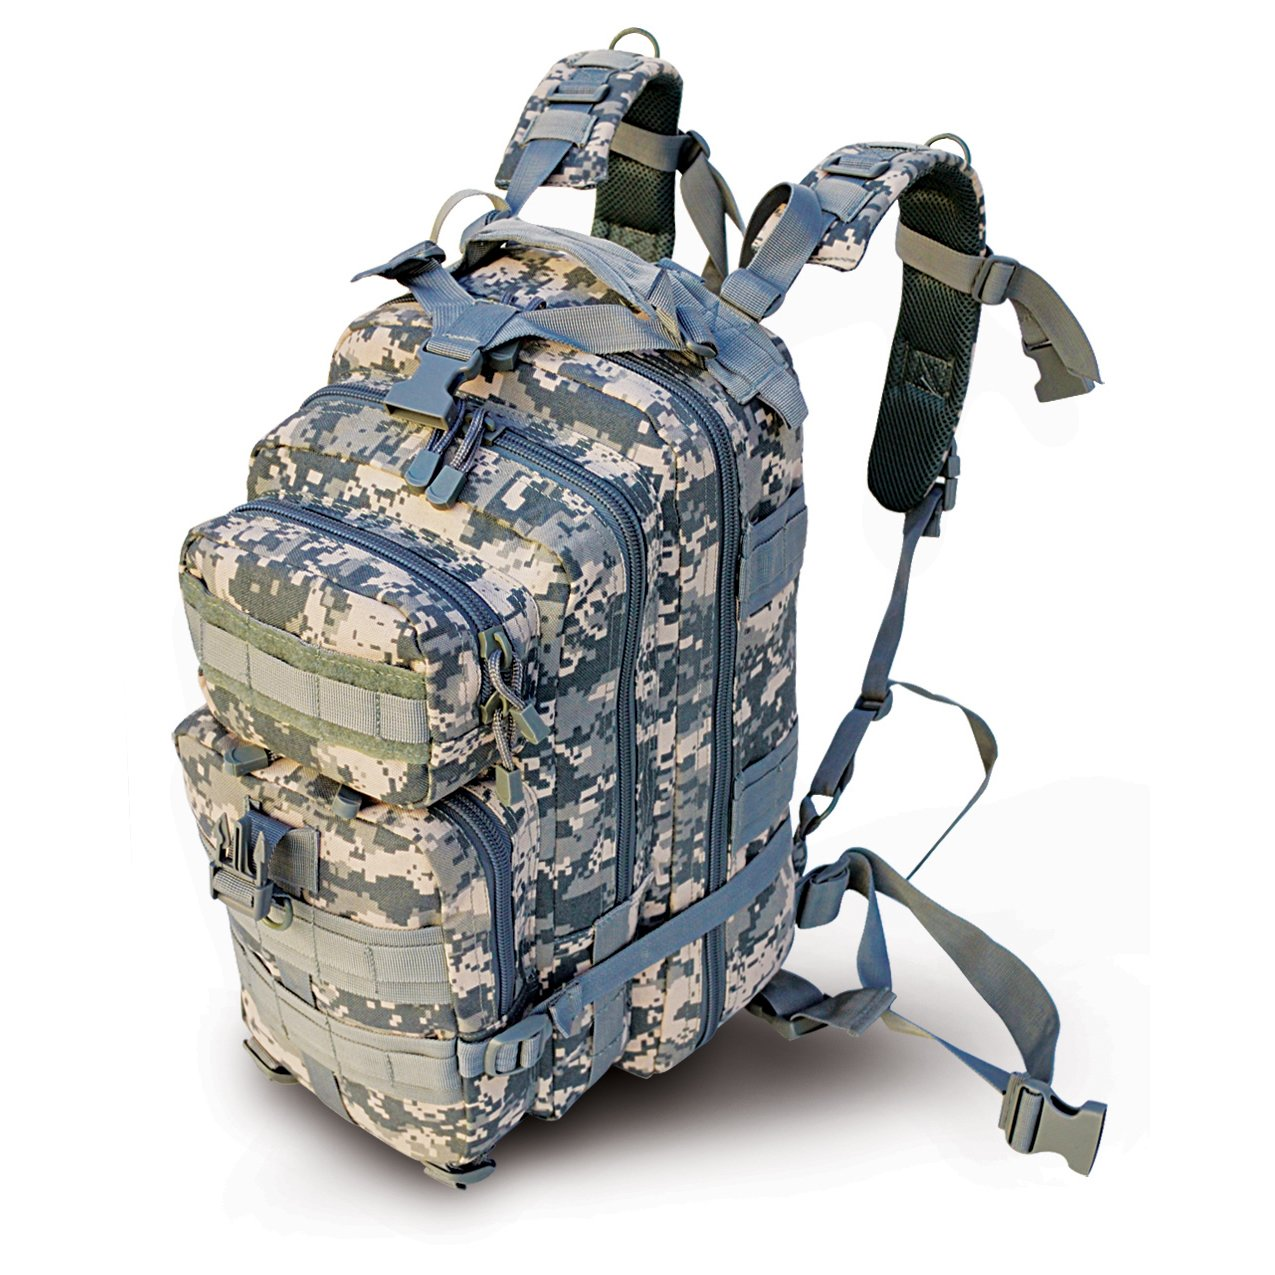 Choosing a Survival Backpack – Things to Consider